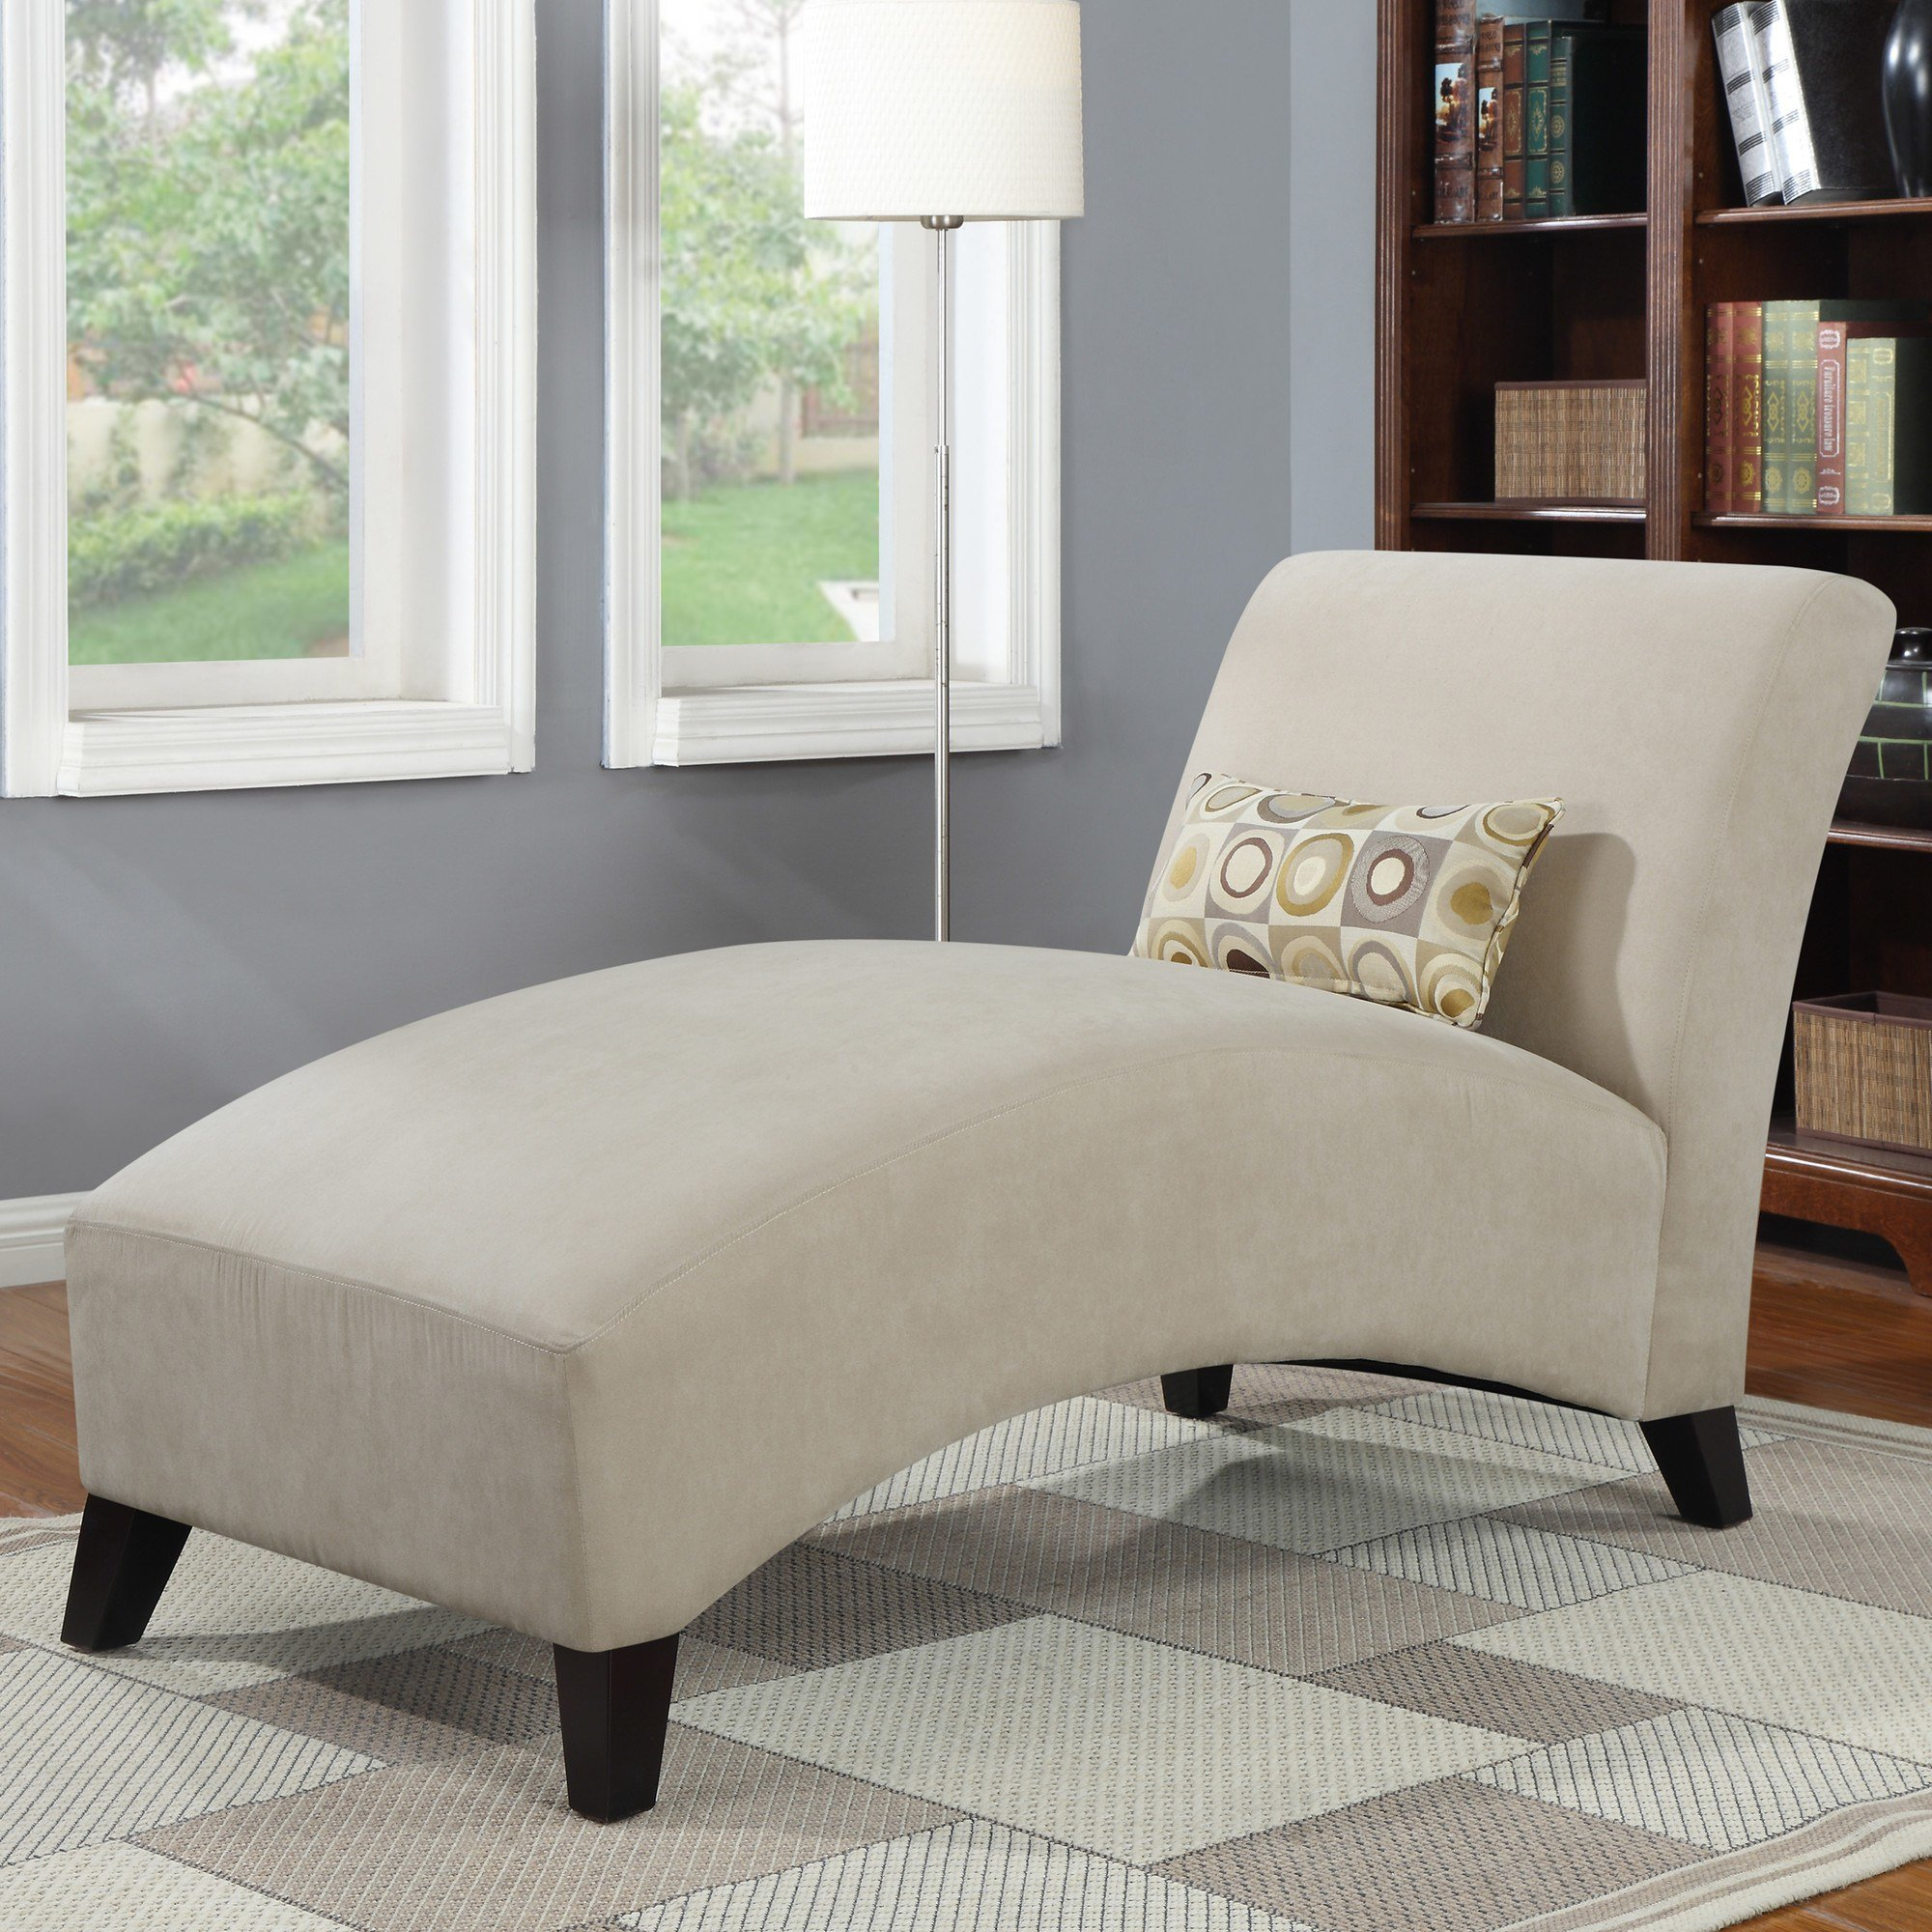 Best Chaise Lounge Modern Furniture Sofa Chairs Bedroom Indoor Office Couch Patio Ebay With Pictures